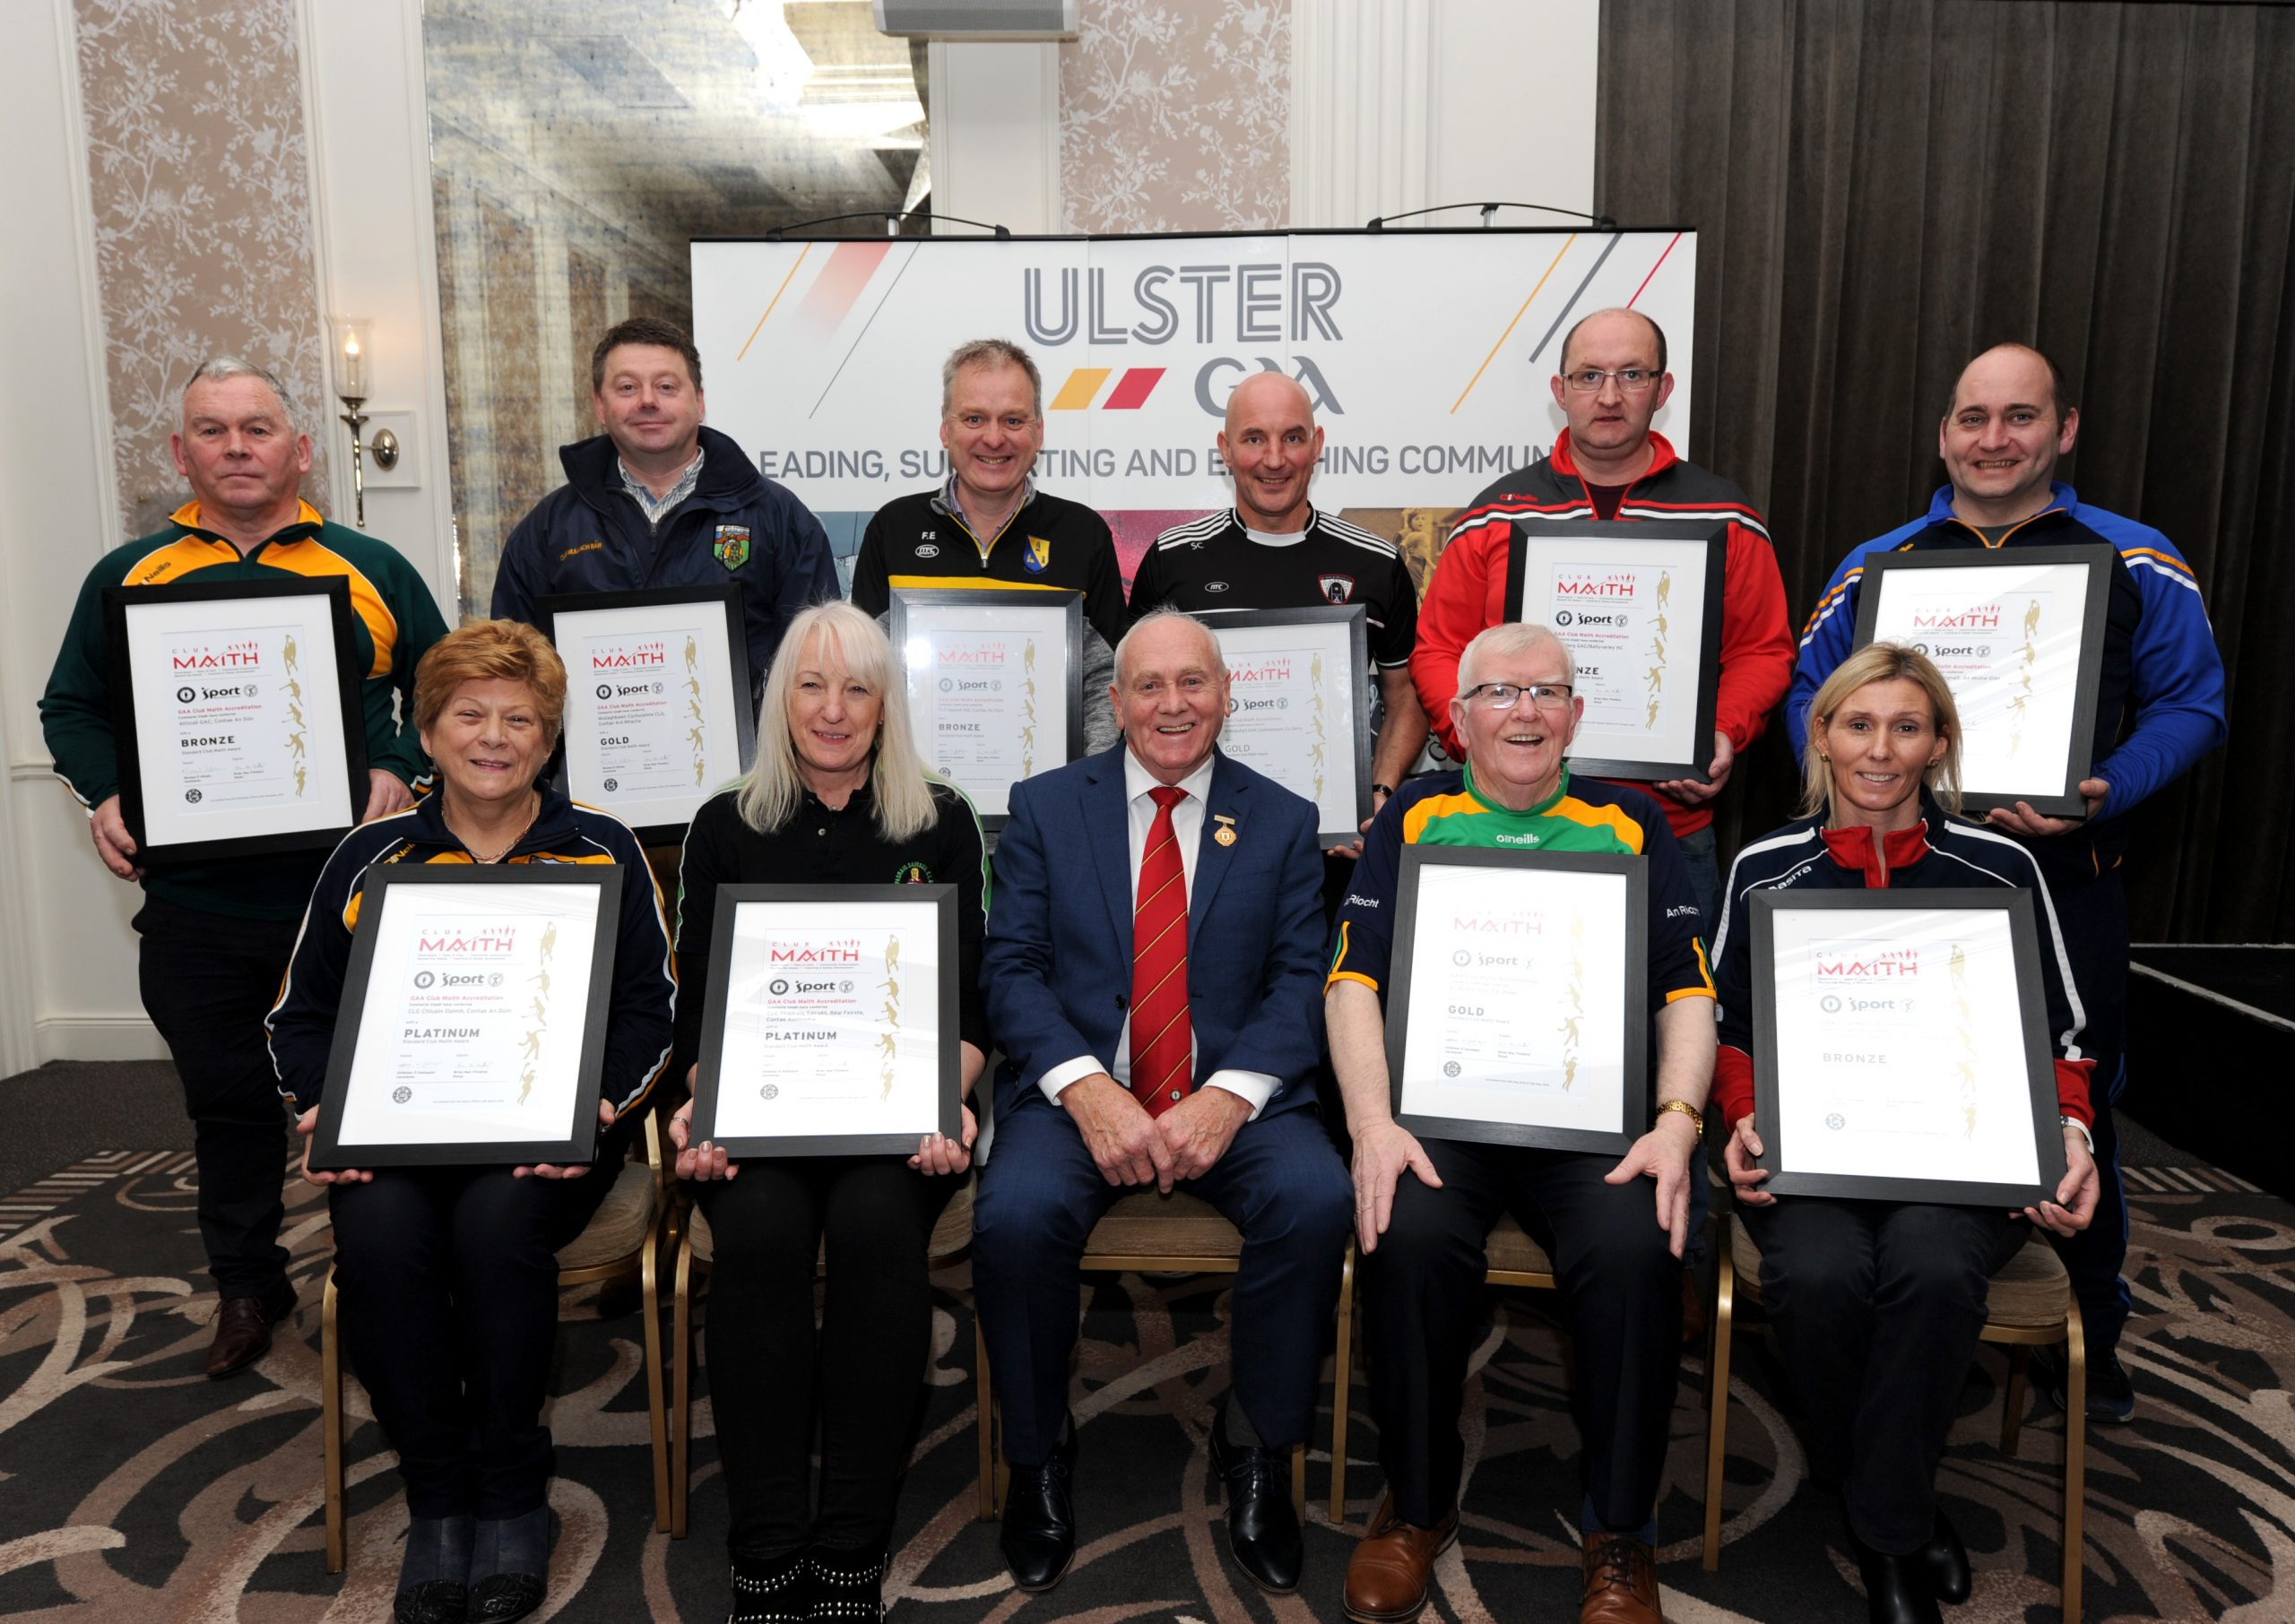 11 Clubs across Ulster receive Club Maith status